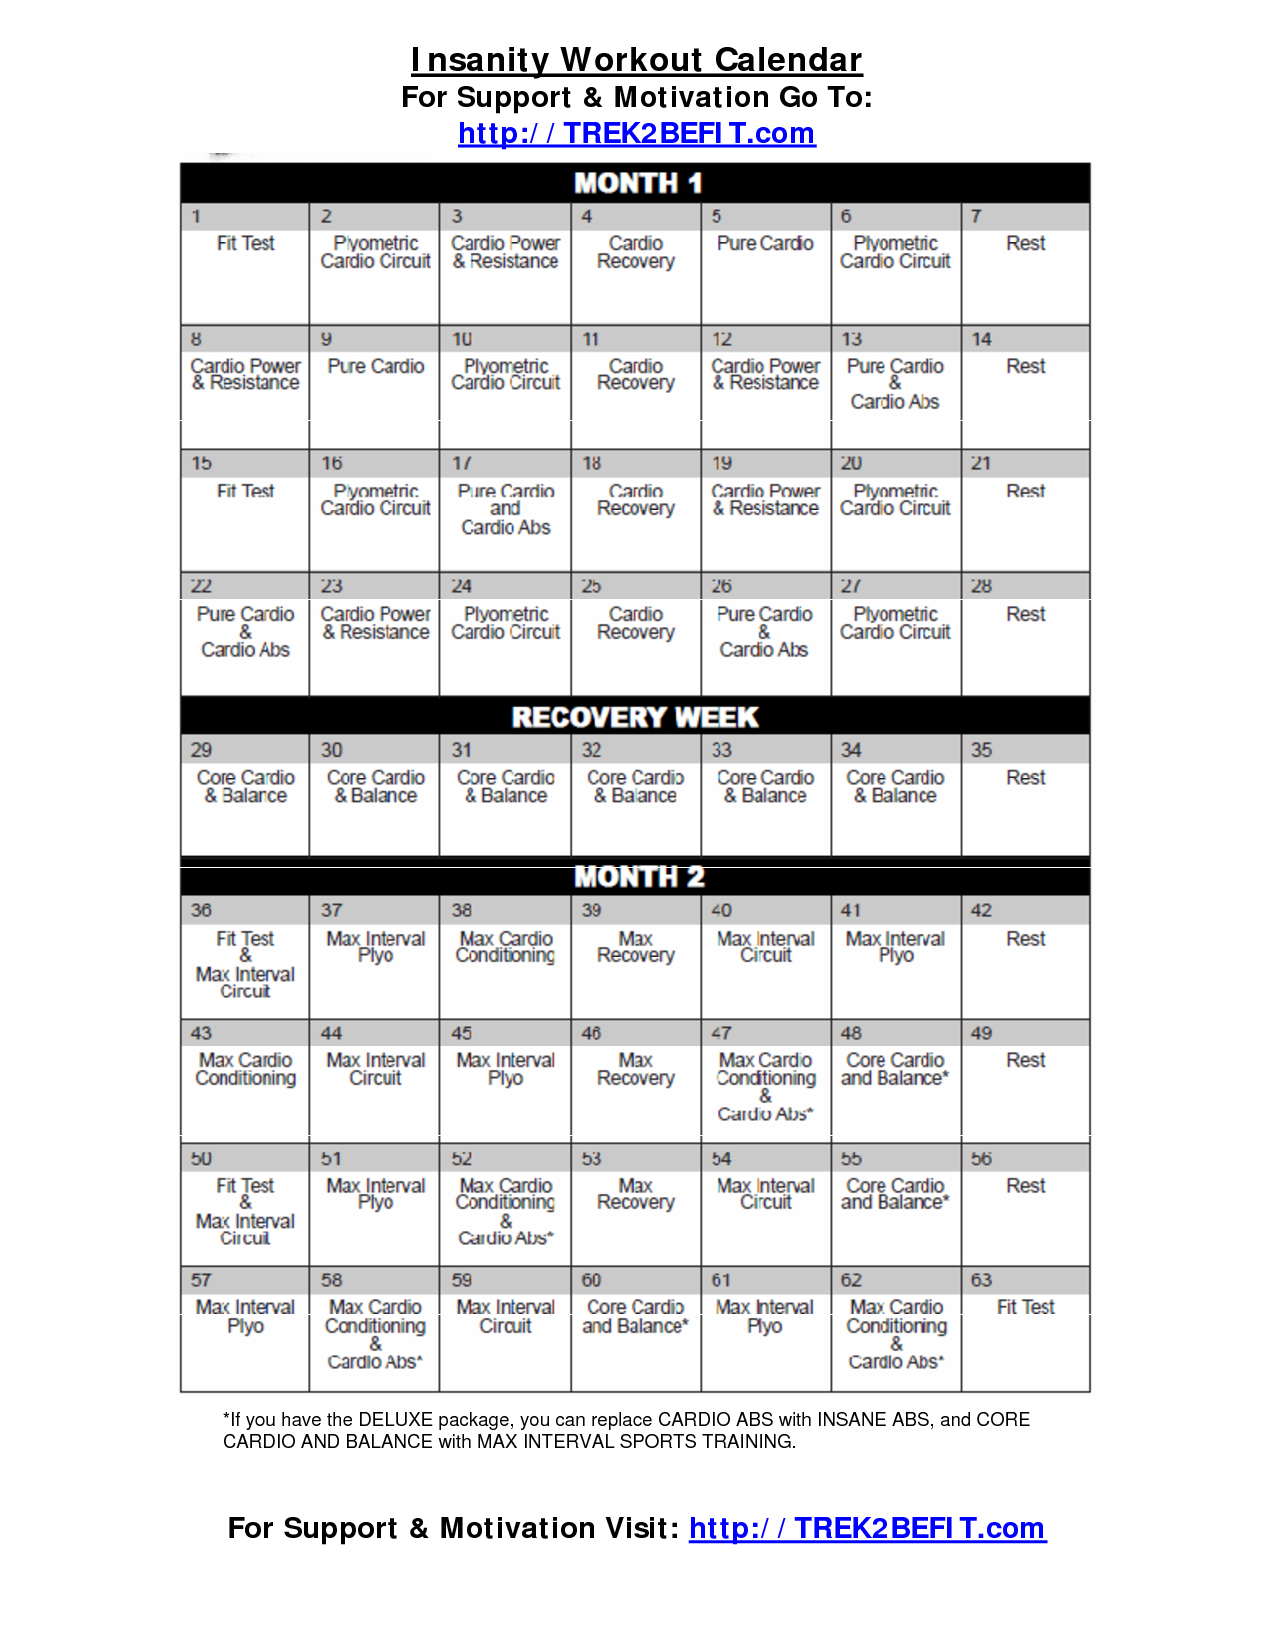 Insanity Workout Calendar Oh Yeah Started Three Days